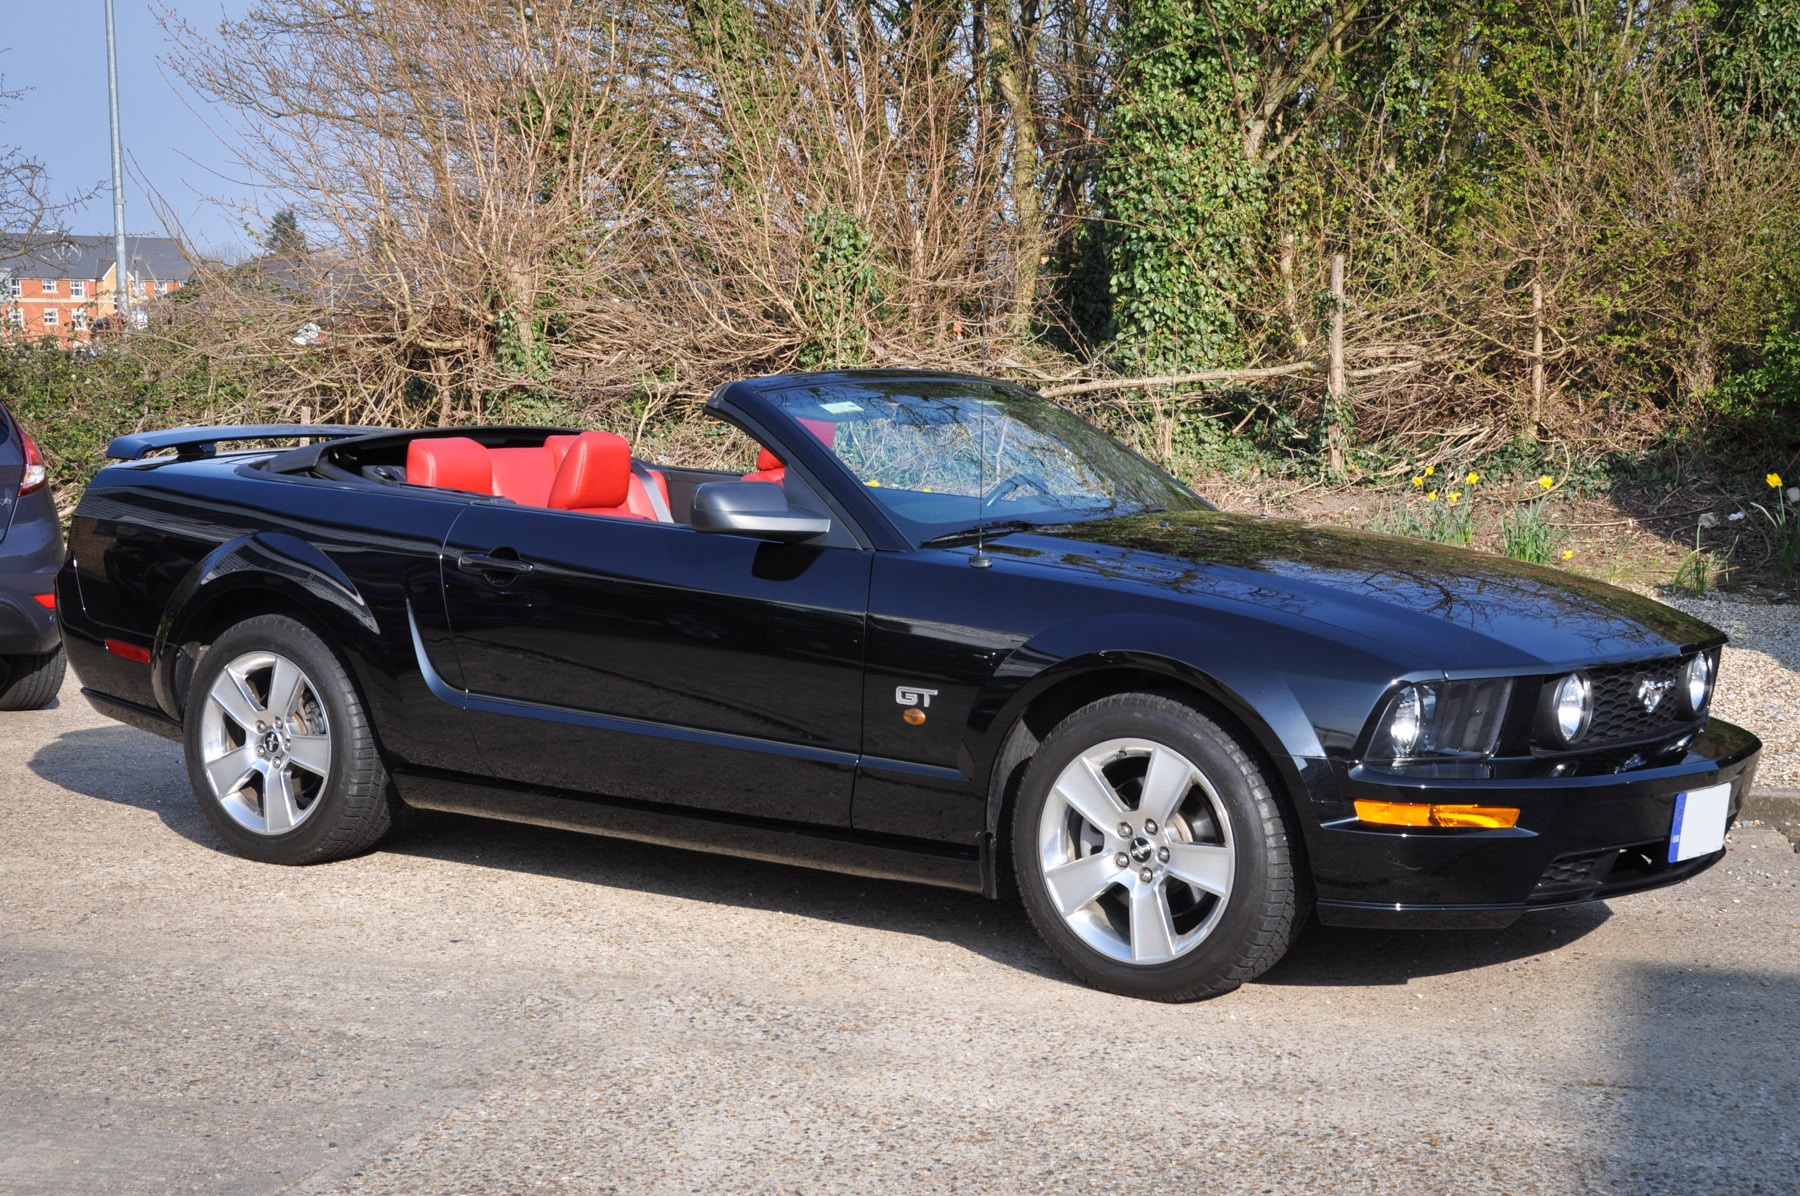 2006 55 ford mustang gt 4 6 litre v8 convertible premium 19 000 miles full history. Black Bedroom Furniture Sets. Home Design Ideas